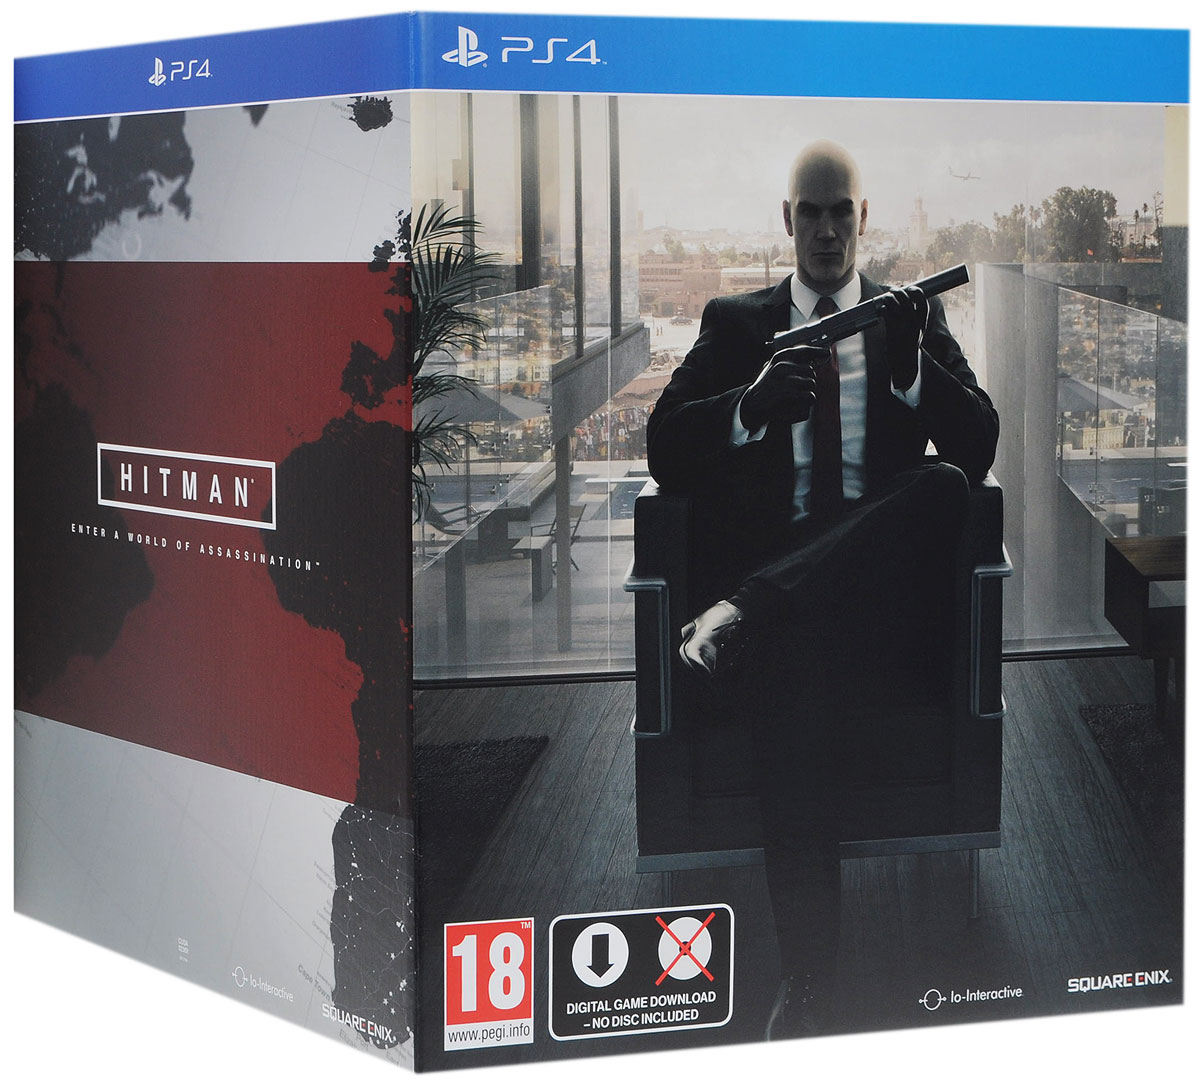 Hitman. Digital Collectors Edition (PS4)